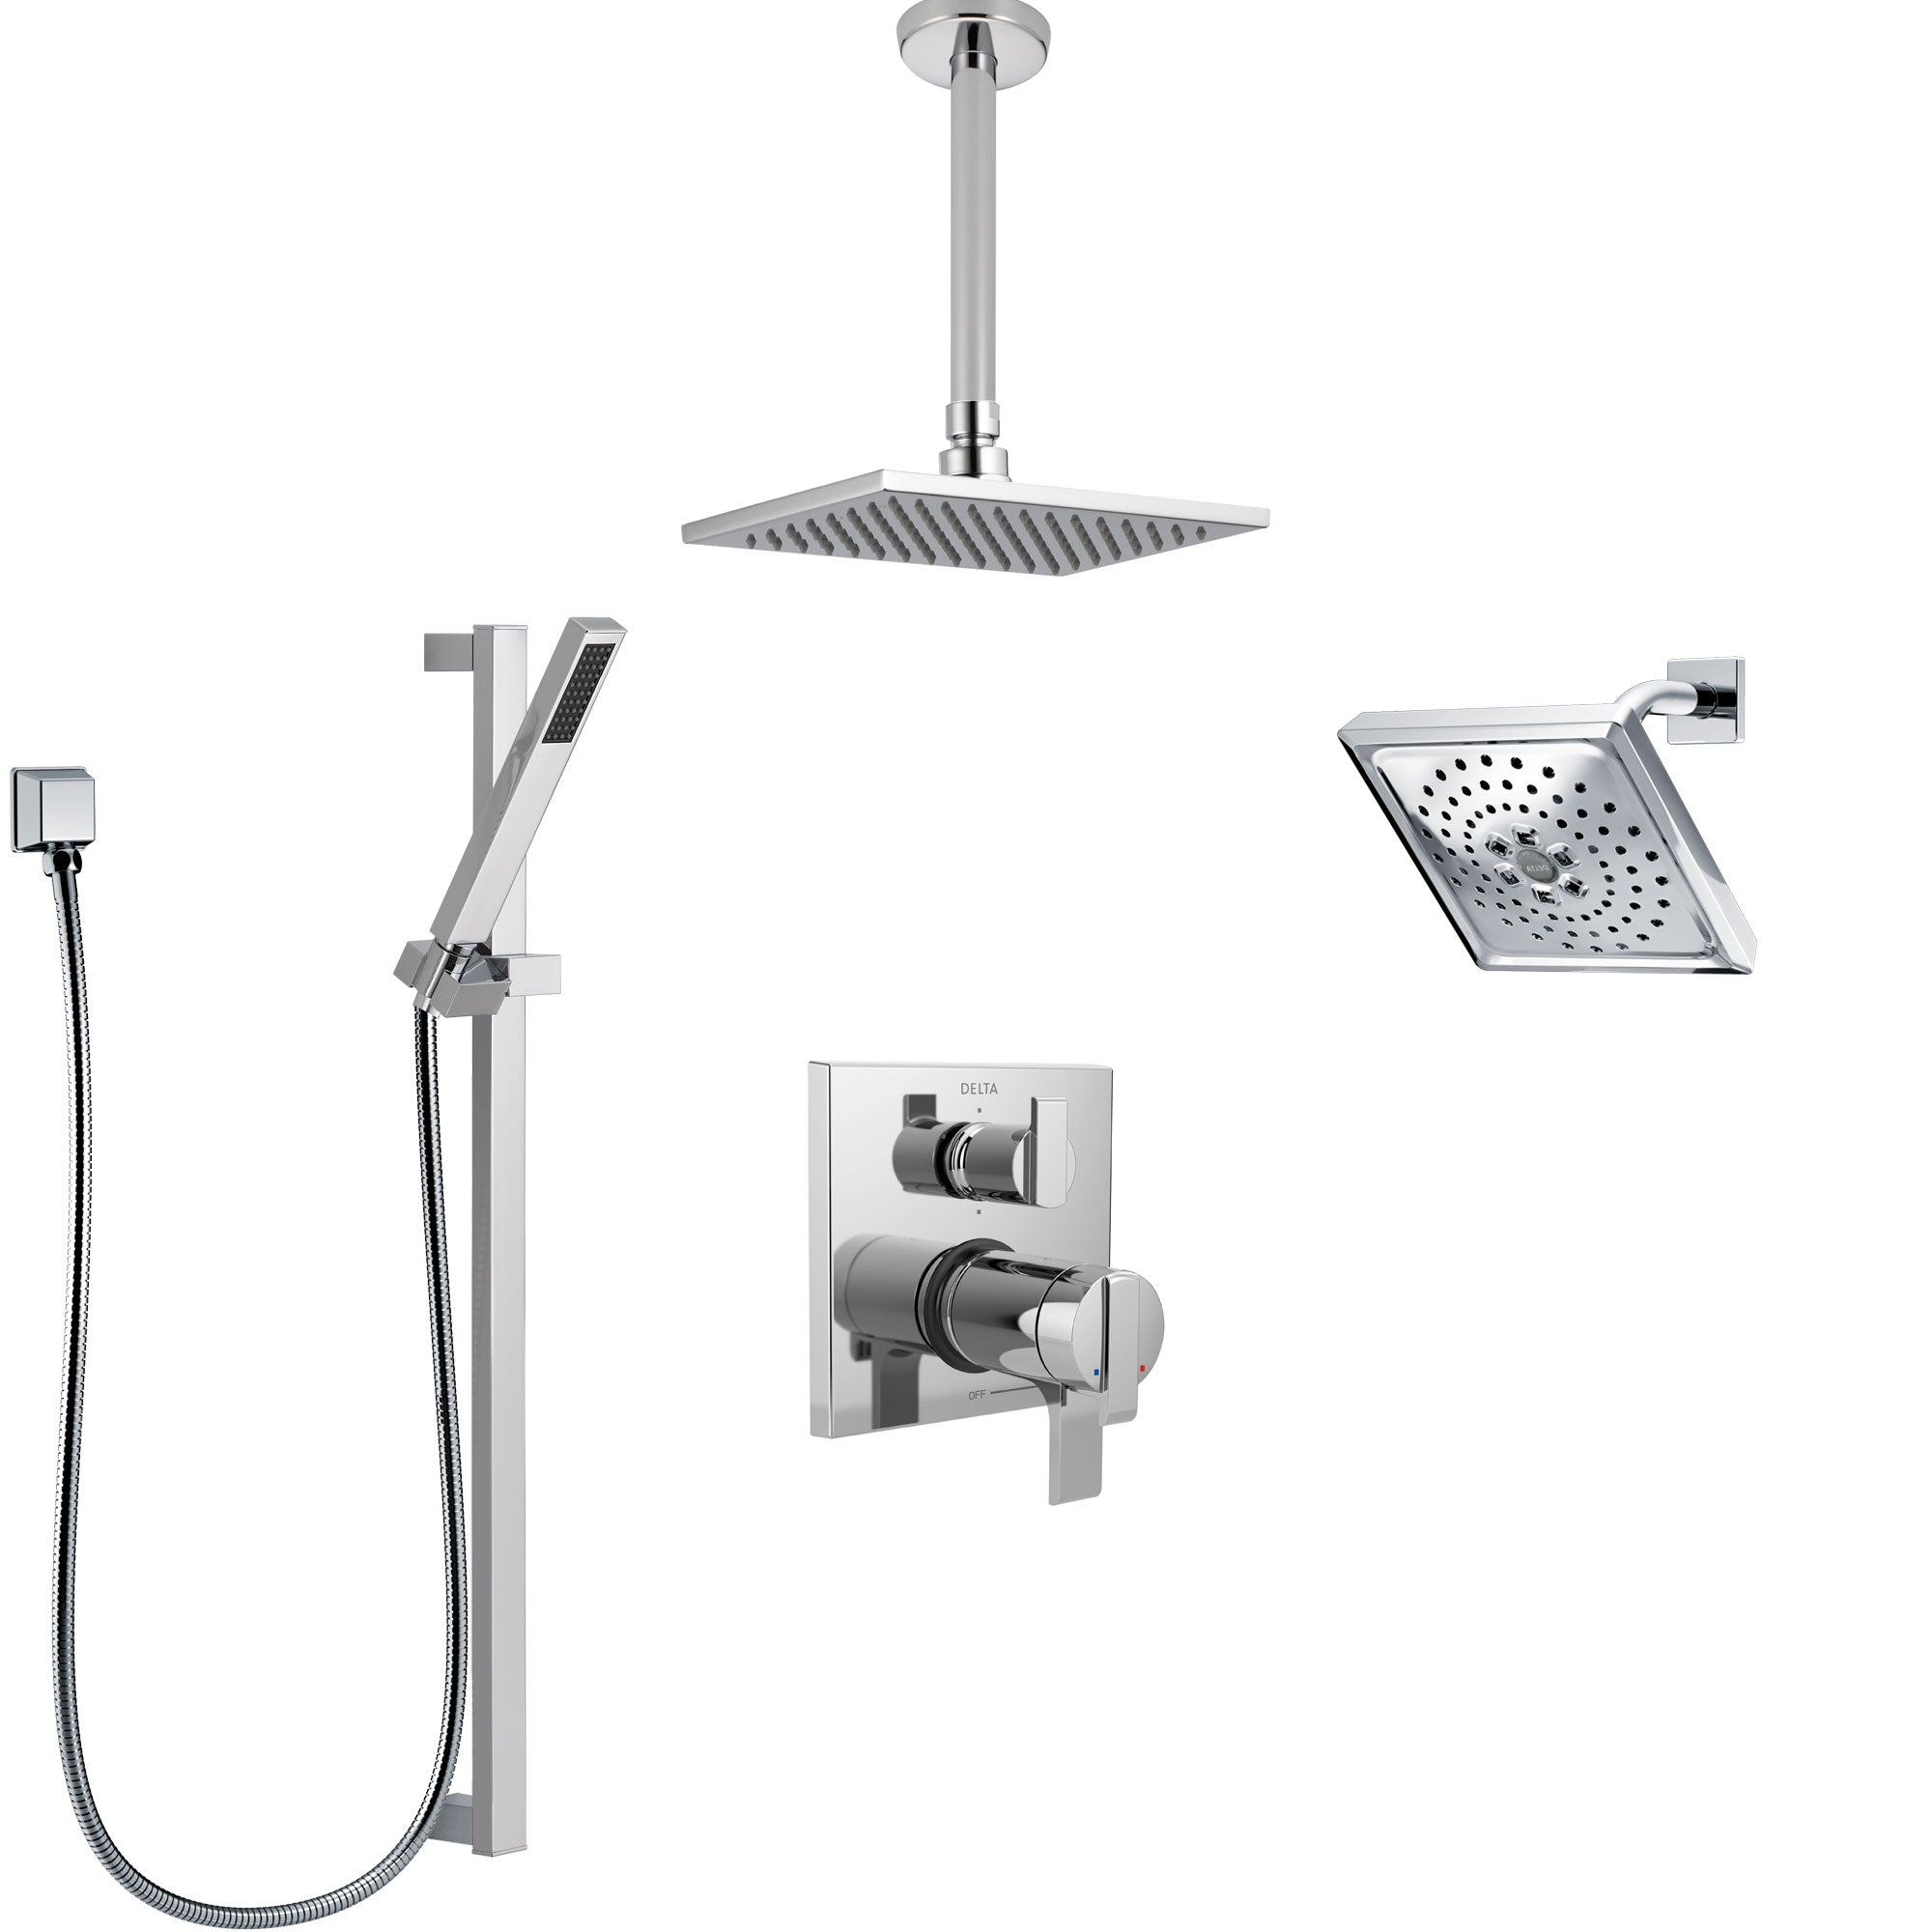 Delta Ara Chrome Shower System with Dual Thermostatic Control, Integrated Diverter, Showerhead, Ceiling Mount Showerhead, and Hand Shower SS27T96712